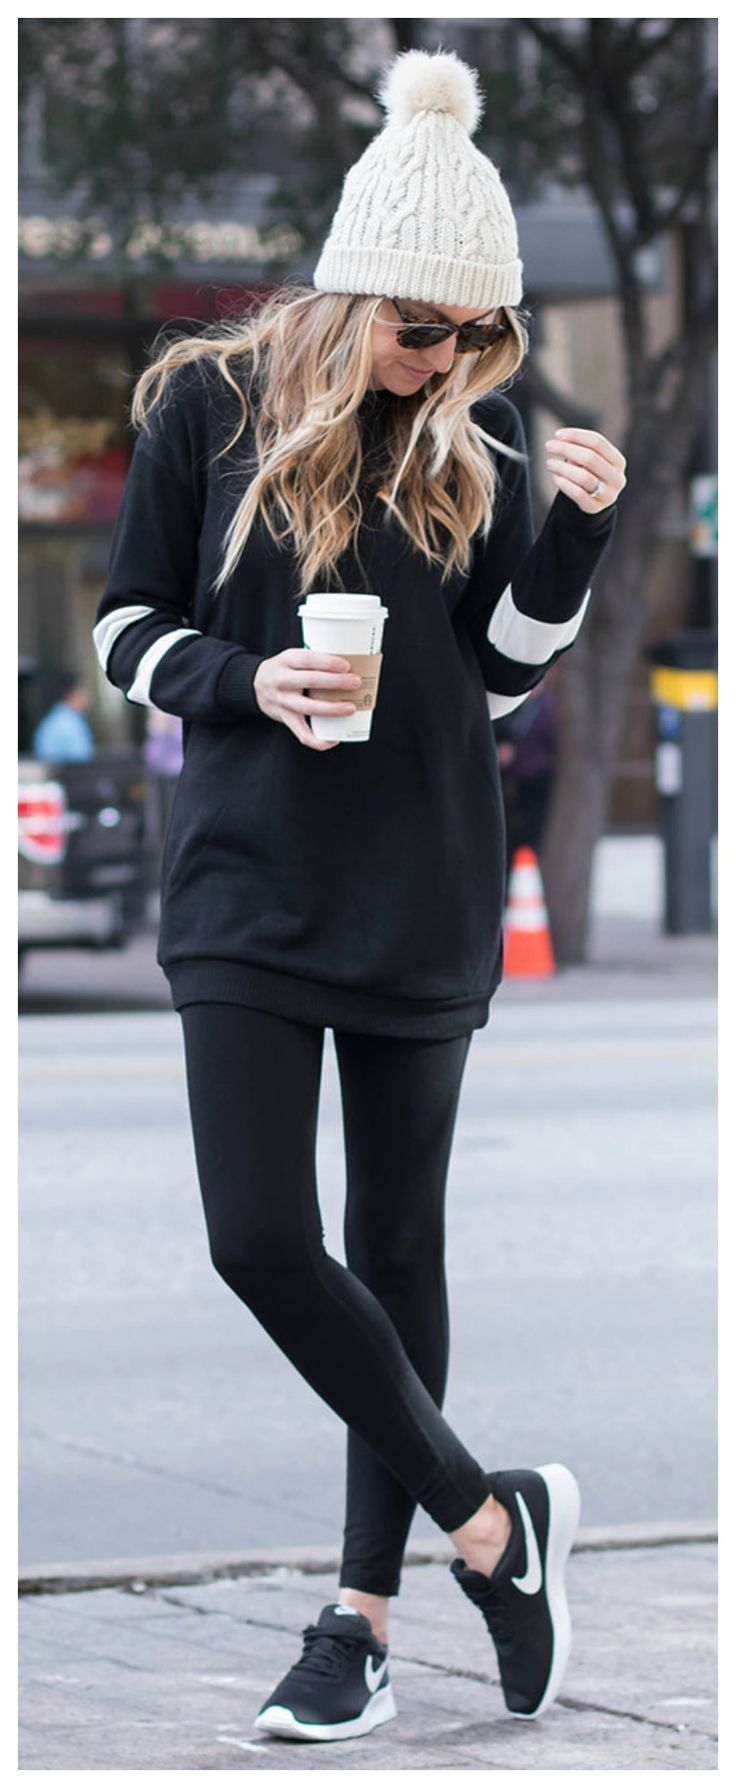 The perfect winter outfit! Black leggings, tunic sweatshirt, beanie, and Nikes. ...